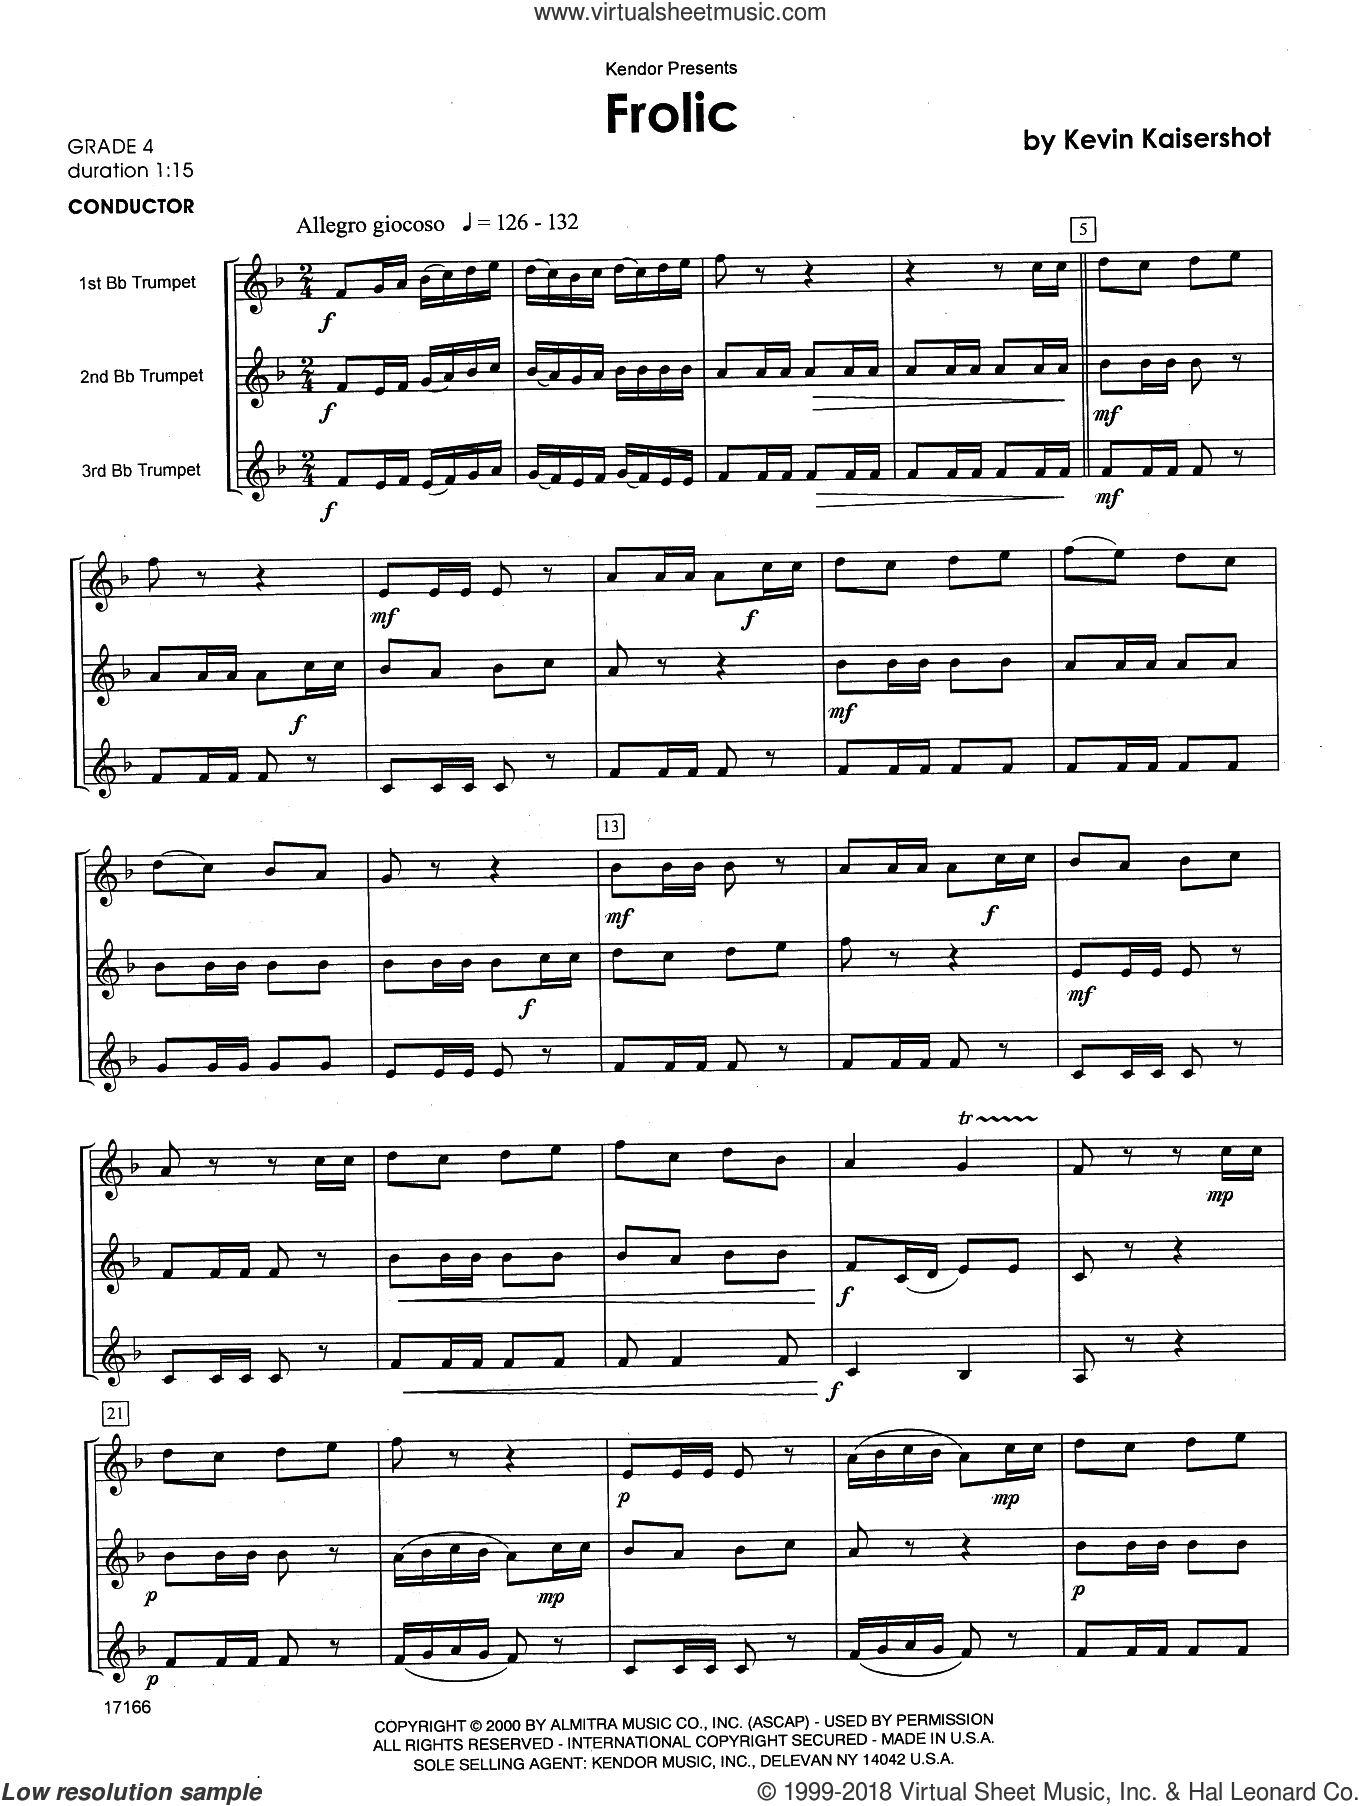 Frolic (COMPLETE) sheet music for trumpet trio by Kaisershot and Kevin Kaisershot, intermediate skill level